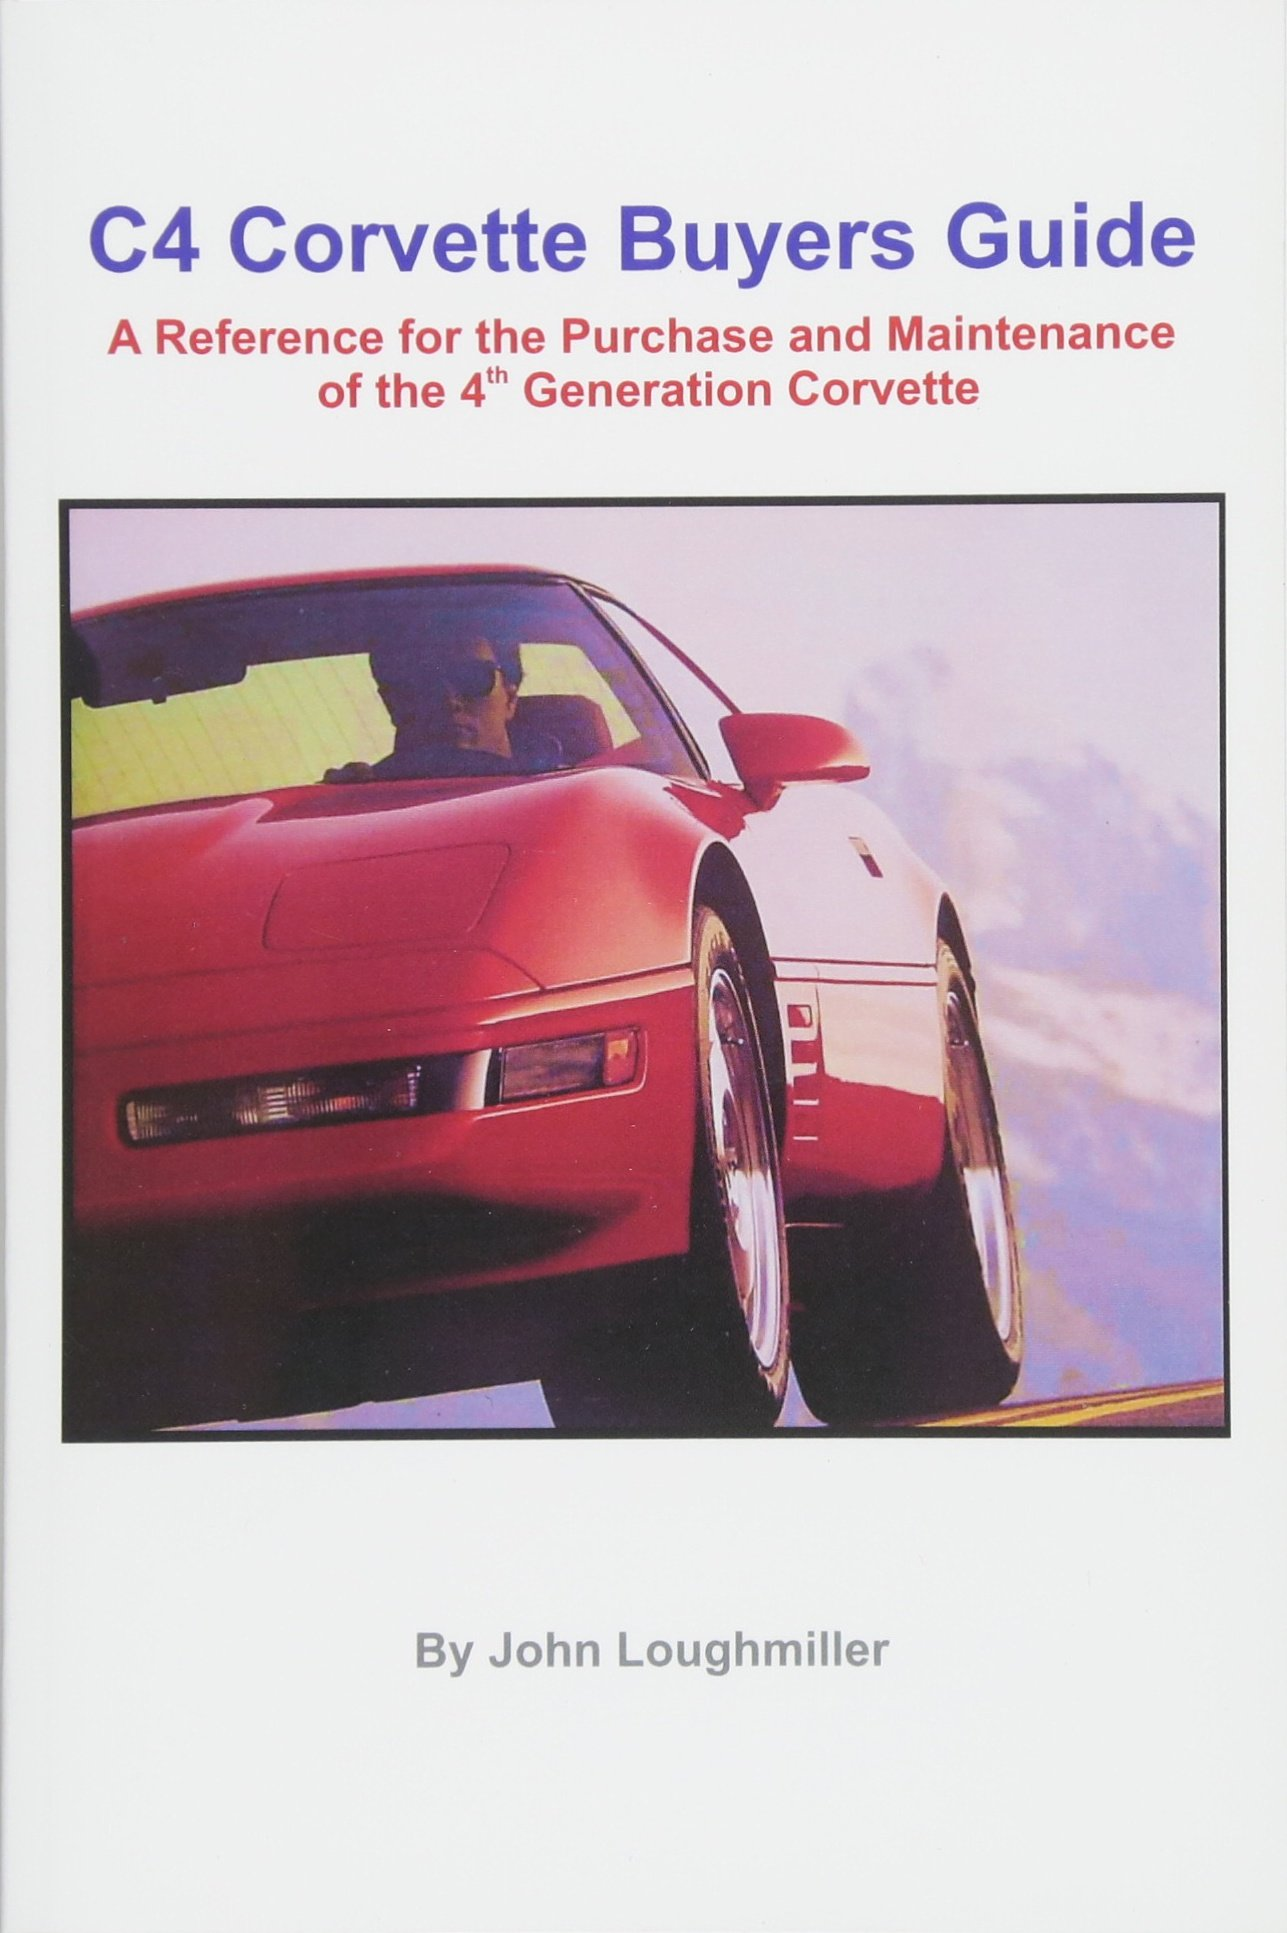 C4 Corvette Buyers Guide  A Reference For The Purchase And Maintenance Of The 4th Generation Corvette